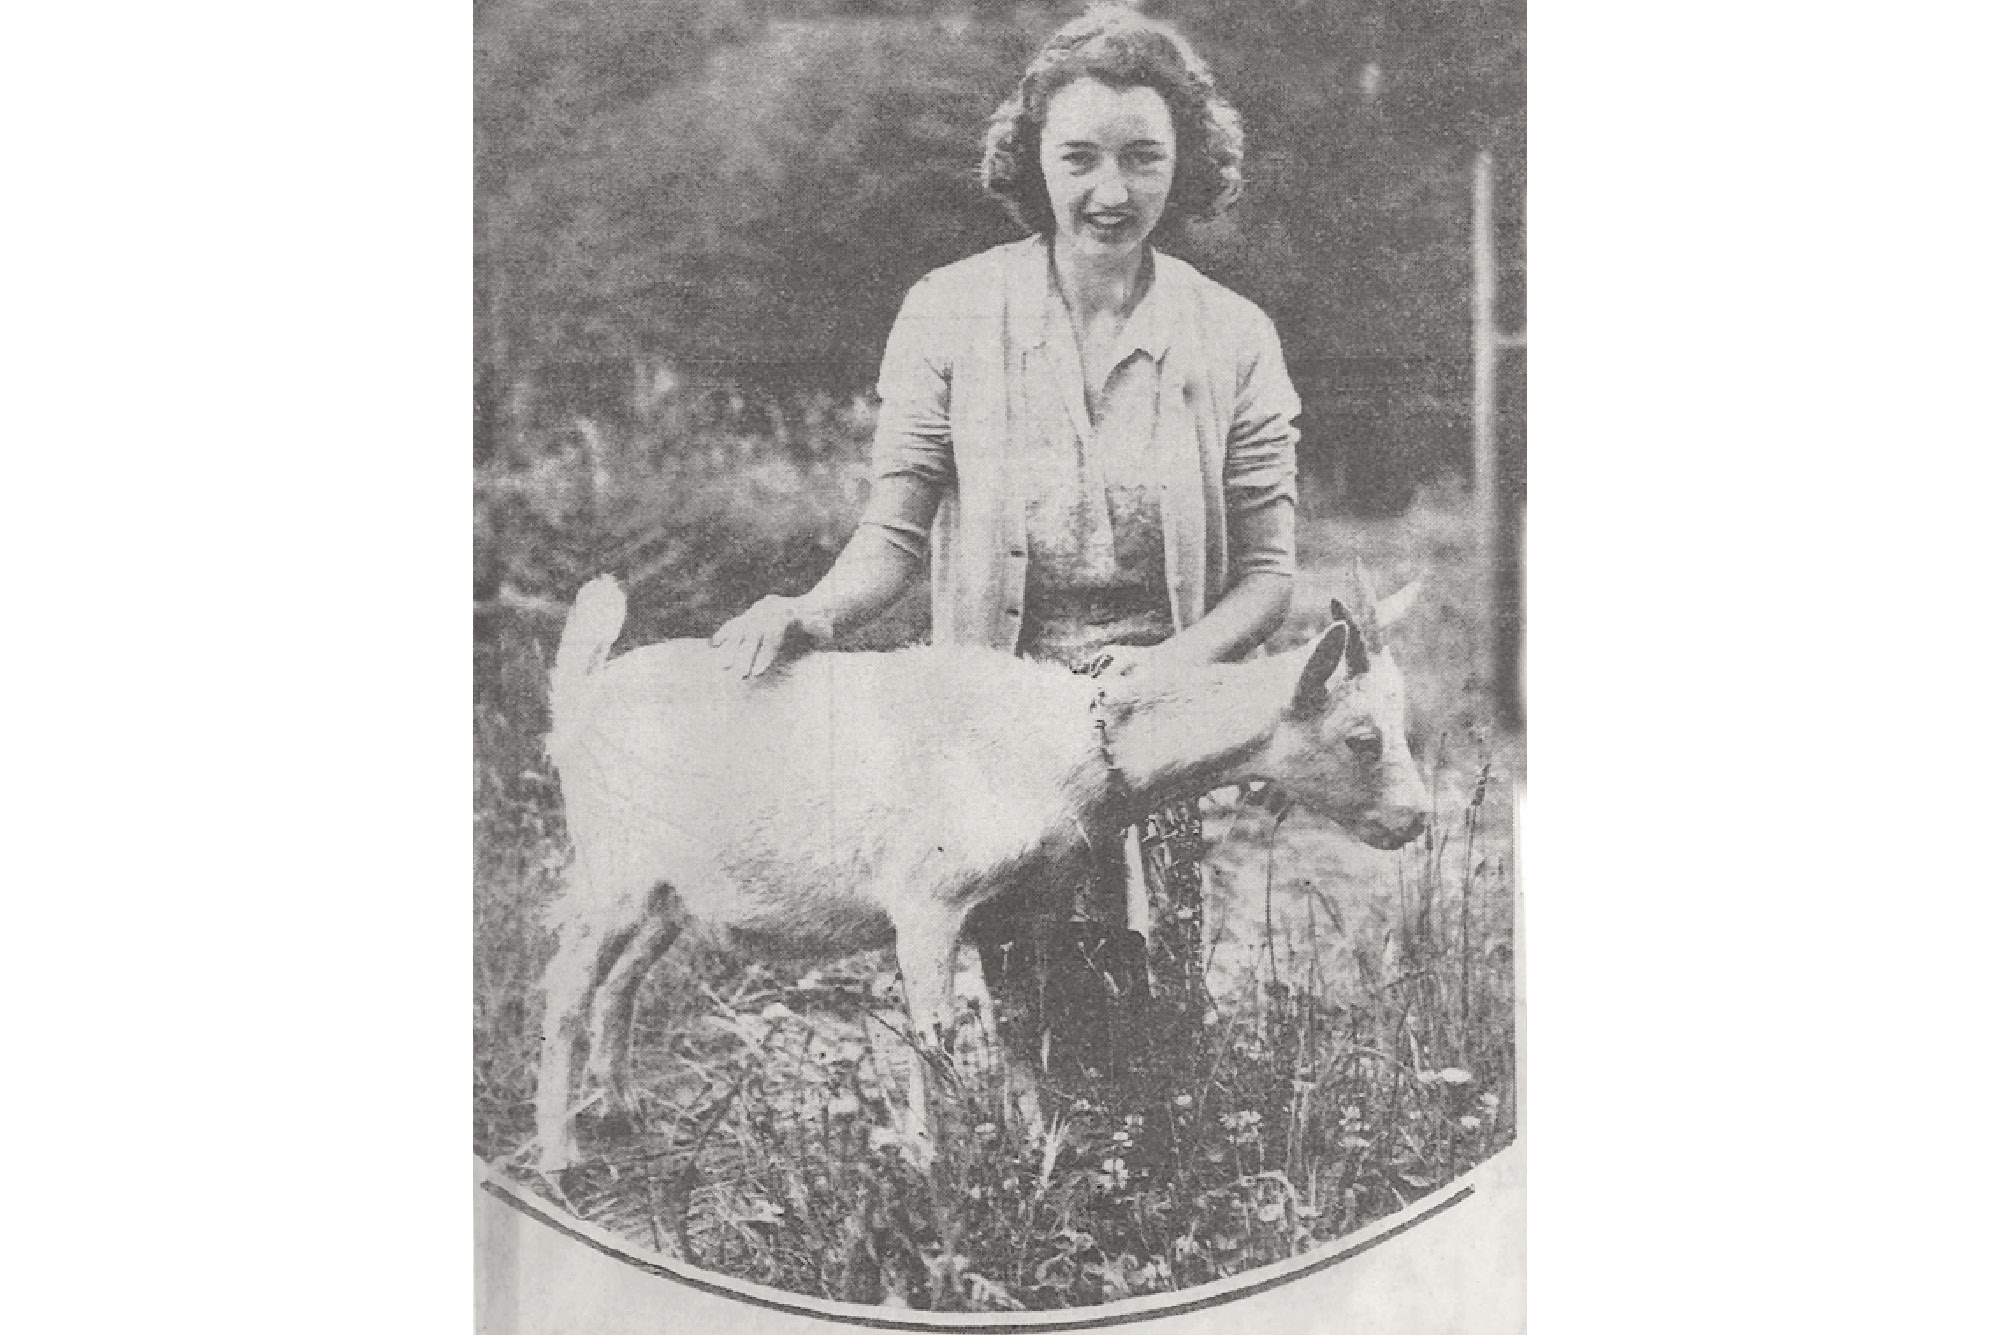 Circle Members distributed goats to families for milk, 1939